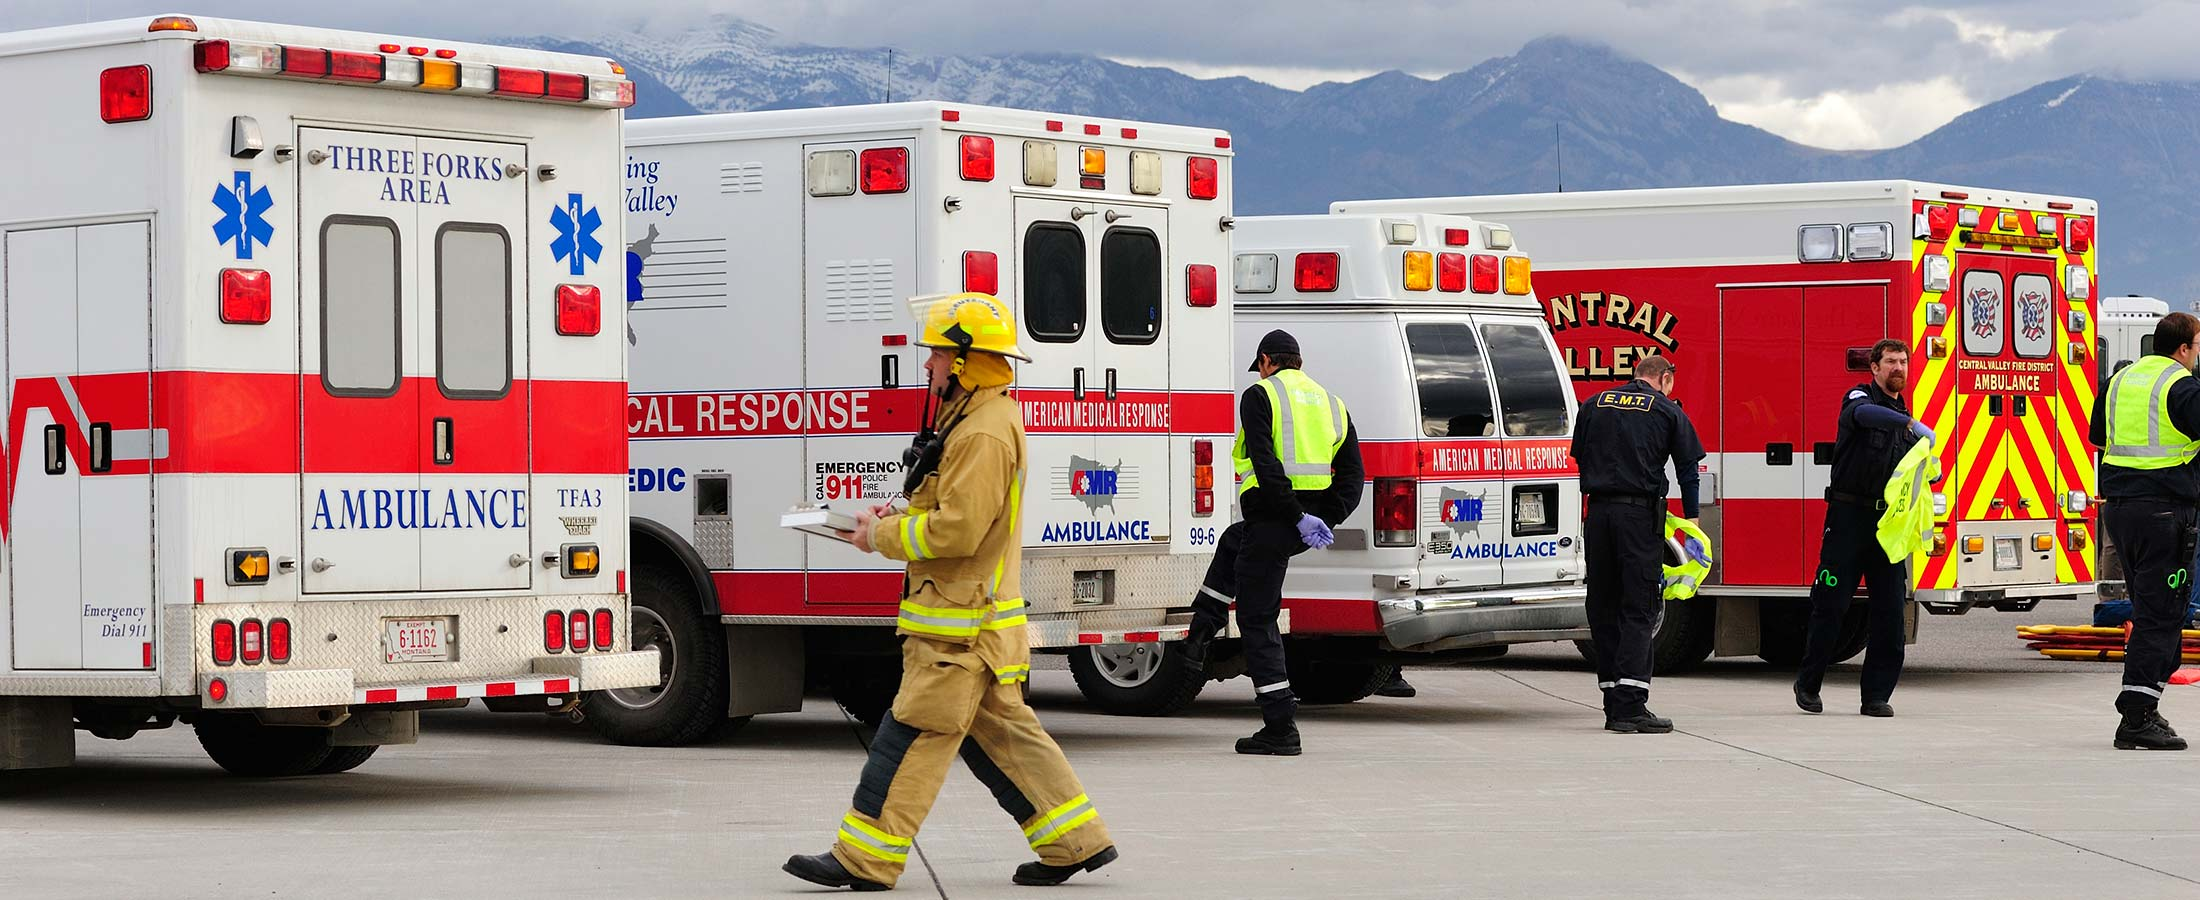 BSS DIPLOMA IN EMERGENCY MEDICAL SERVICES